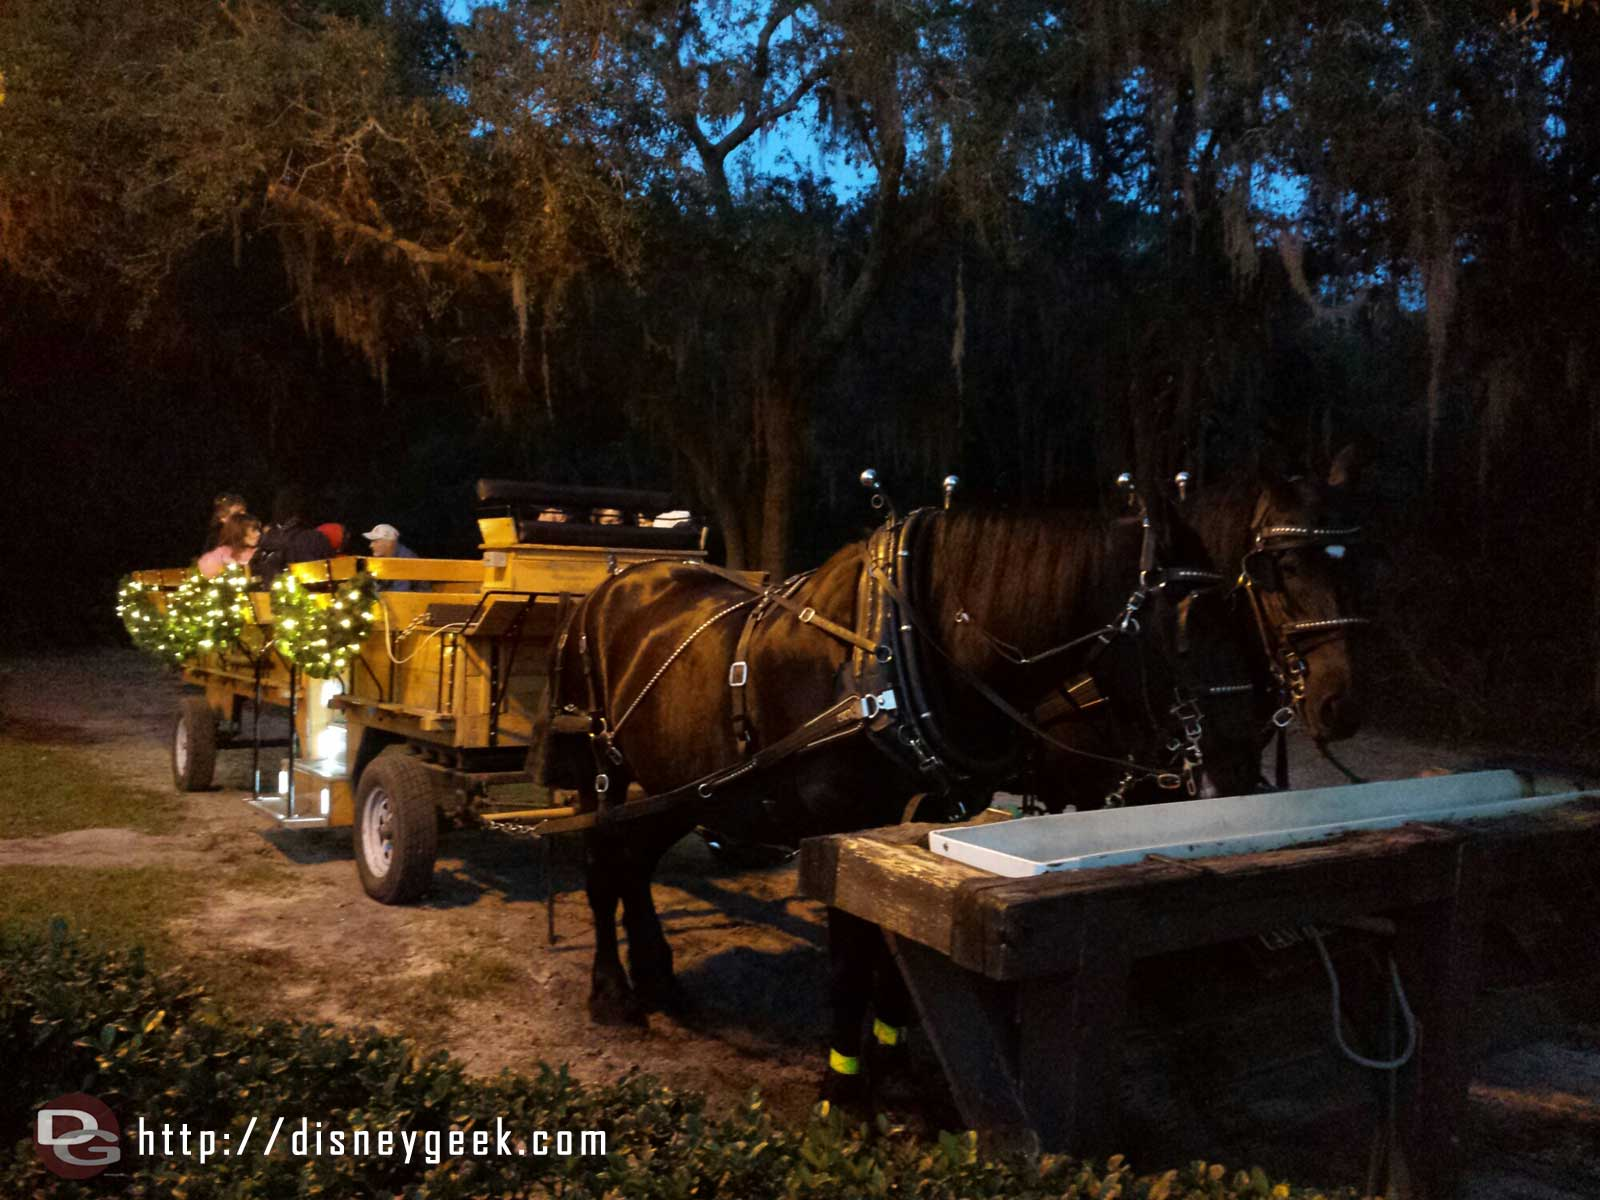 Fort Wilderness wagon rides $8/$5 for 25 min ride